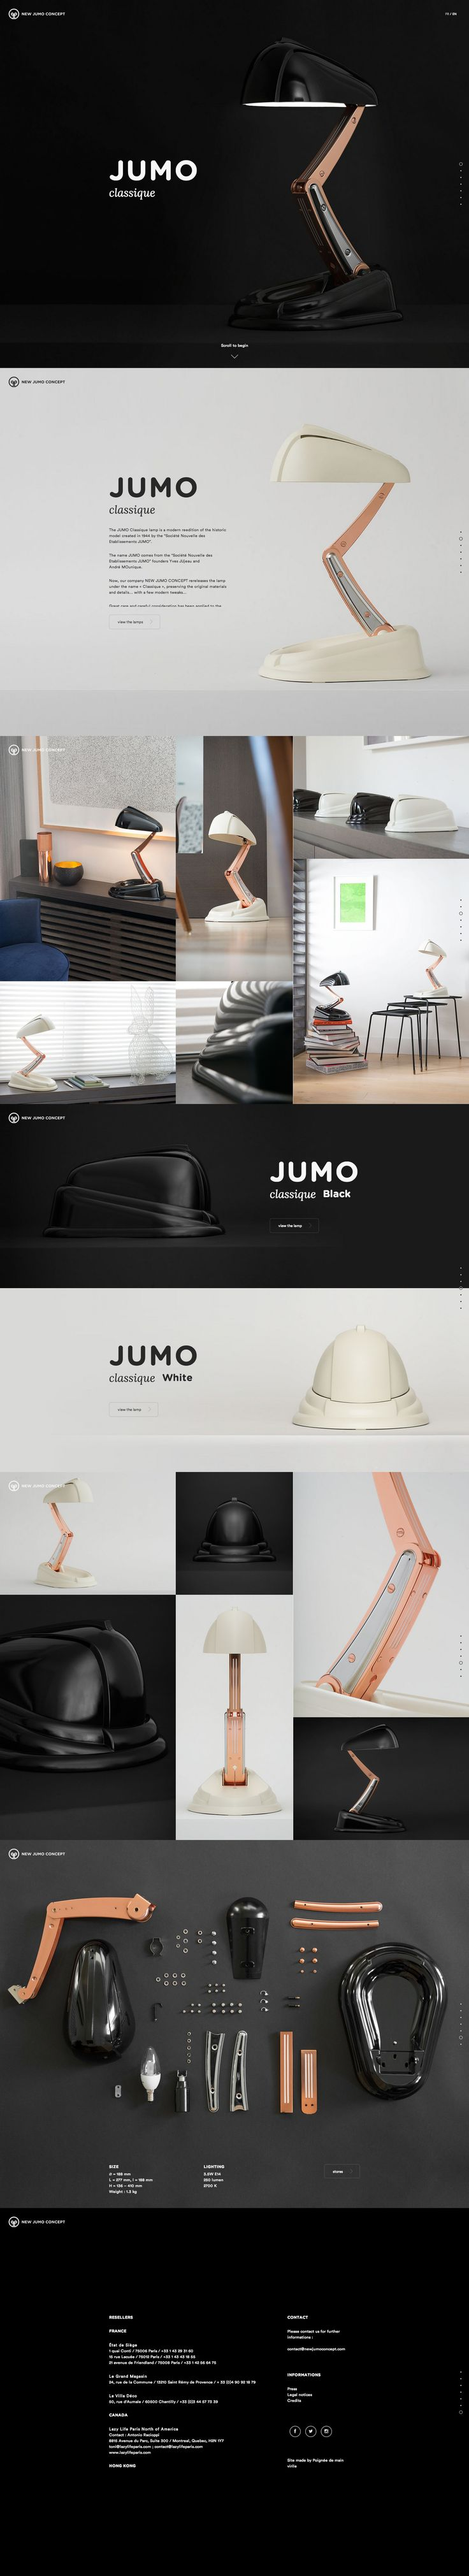 Jumo Lamp #webdesign #website #inspiration #layout